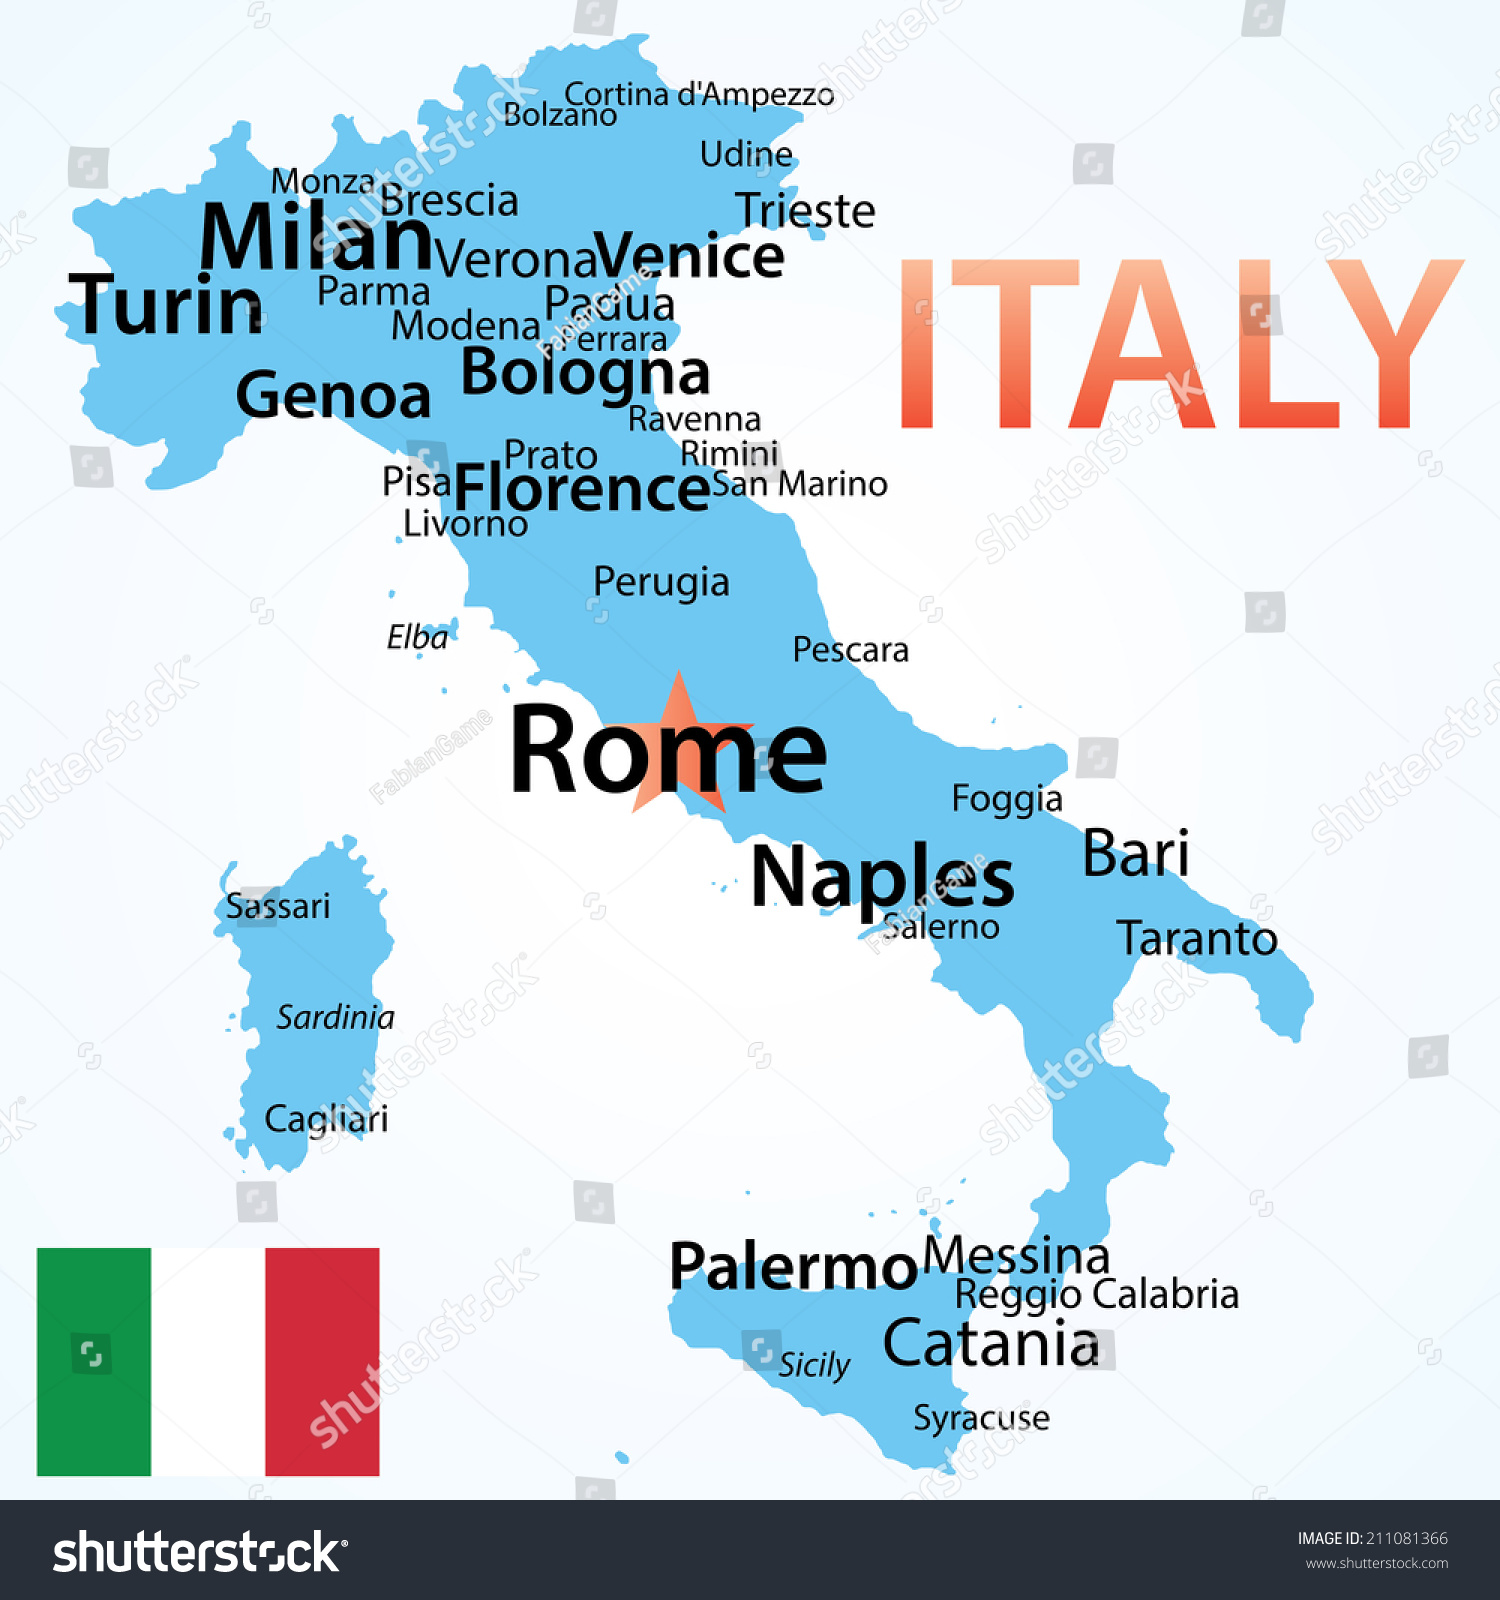 Italy Map Italy Largest Cities Carefully Stock Vector - Cities map of italy